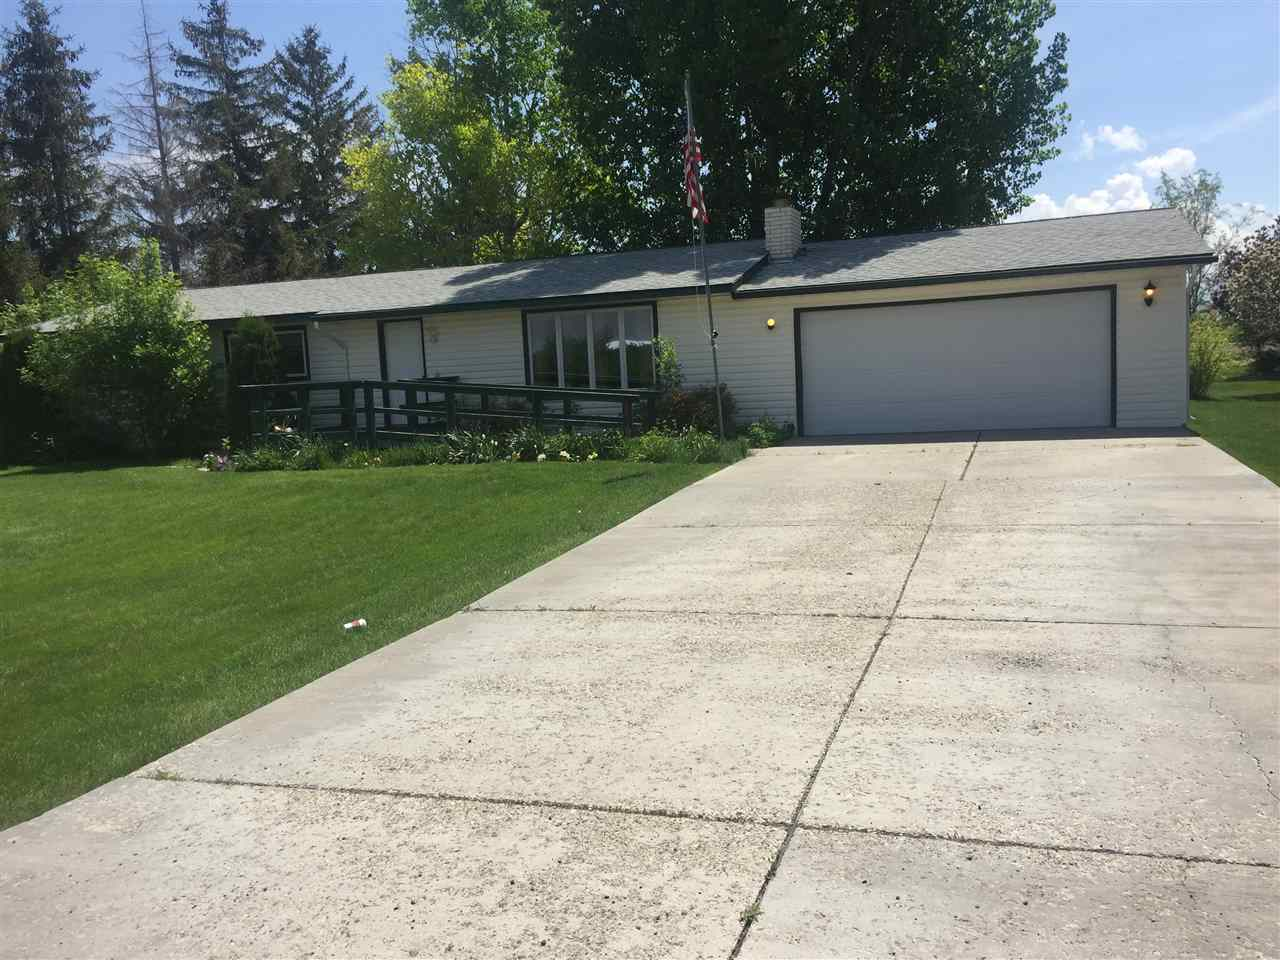 Well maintained home in Sylvan Acres SD. Large 1 acre lot with mature landscaping. Full, finished basement with a full bath. Cozy living in a very desirable neighborhood. 2 car garage, storage shed with a concrete floor. Auto matic sprinklers. This is a classic custom home.  Seller will give a carpet allowance with an accepted purchase.